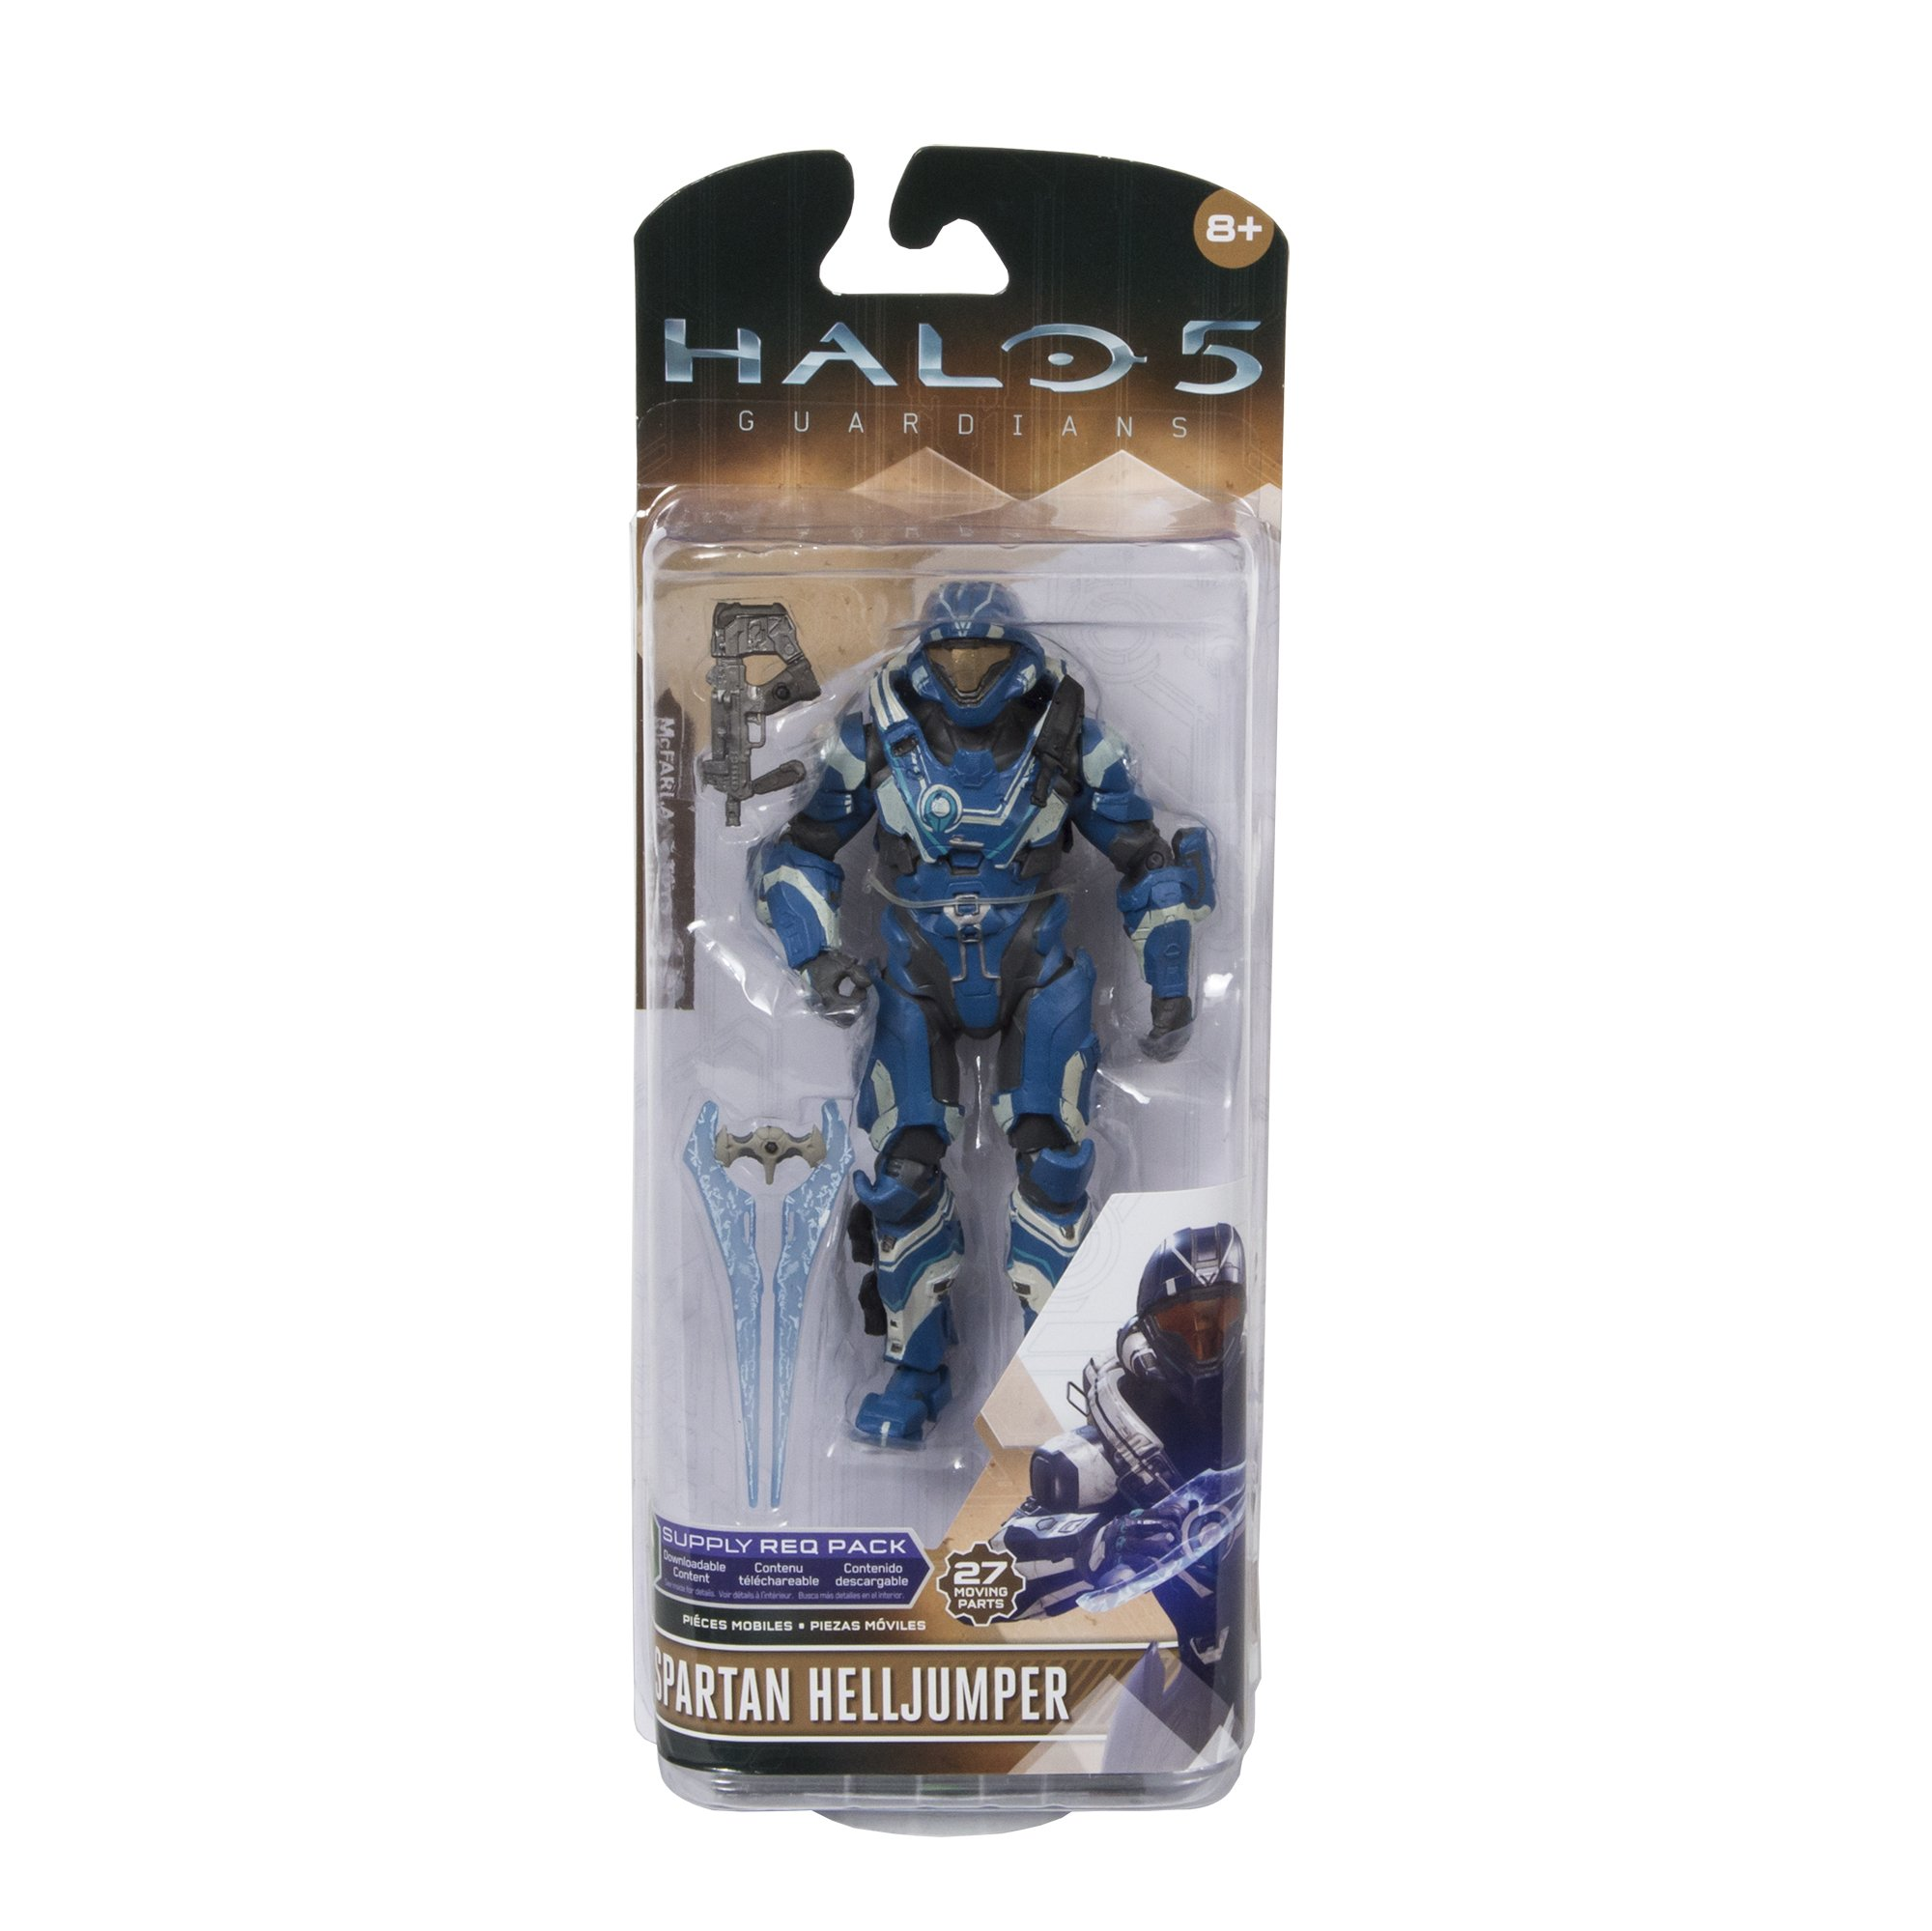 Mcf-halo 5 Guardians Series 2 Spartan Helljumper [6 Inch Figure] (TMP International Inc)